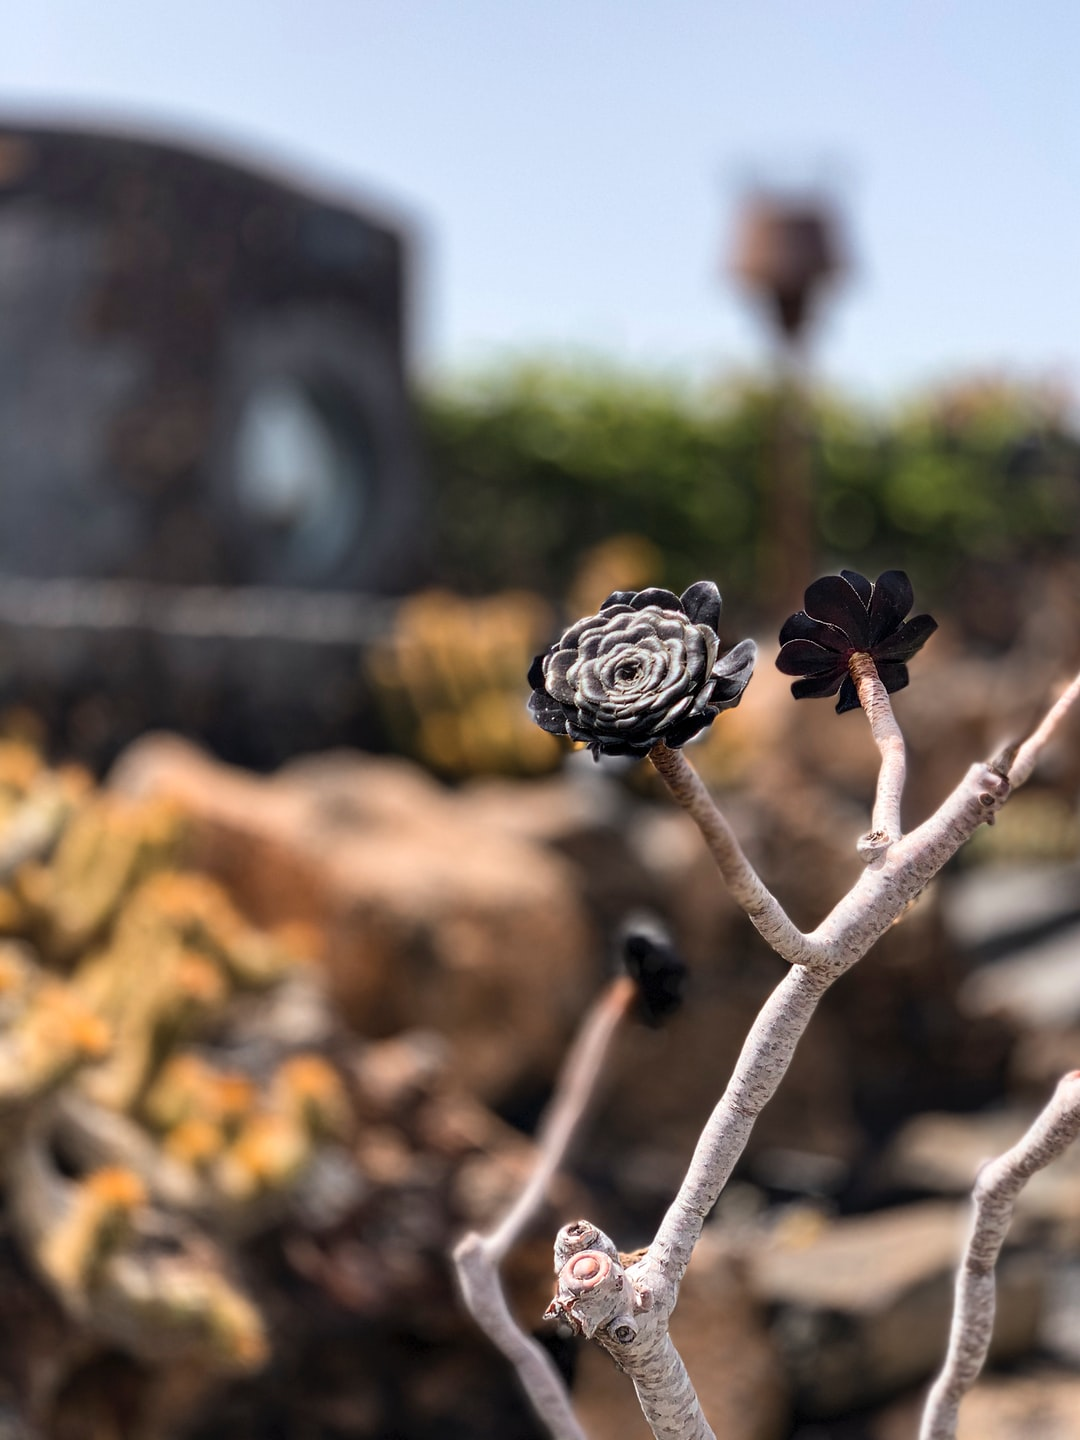 A cactus with a black flower.